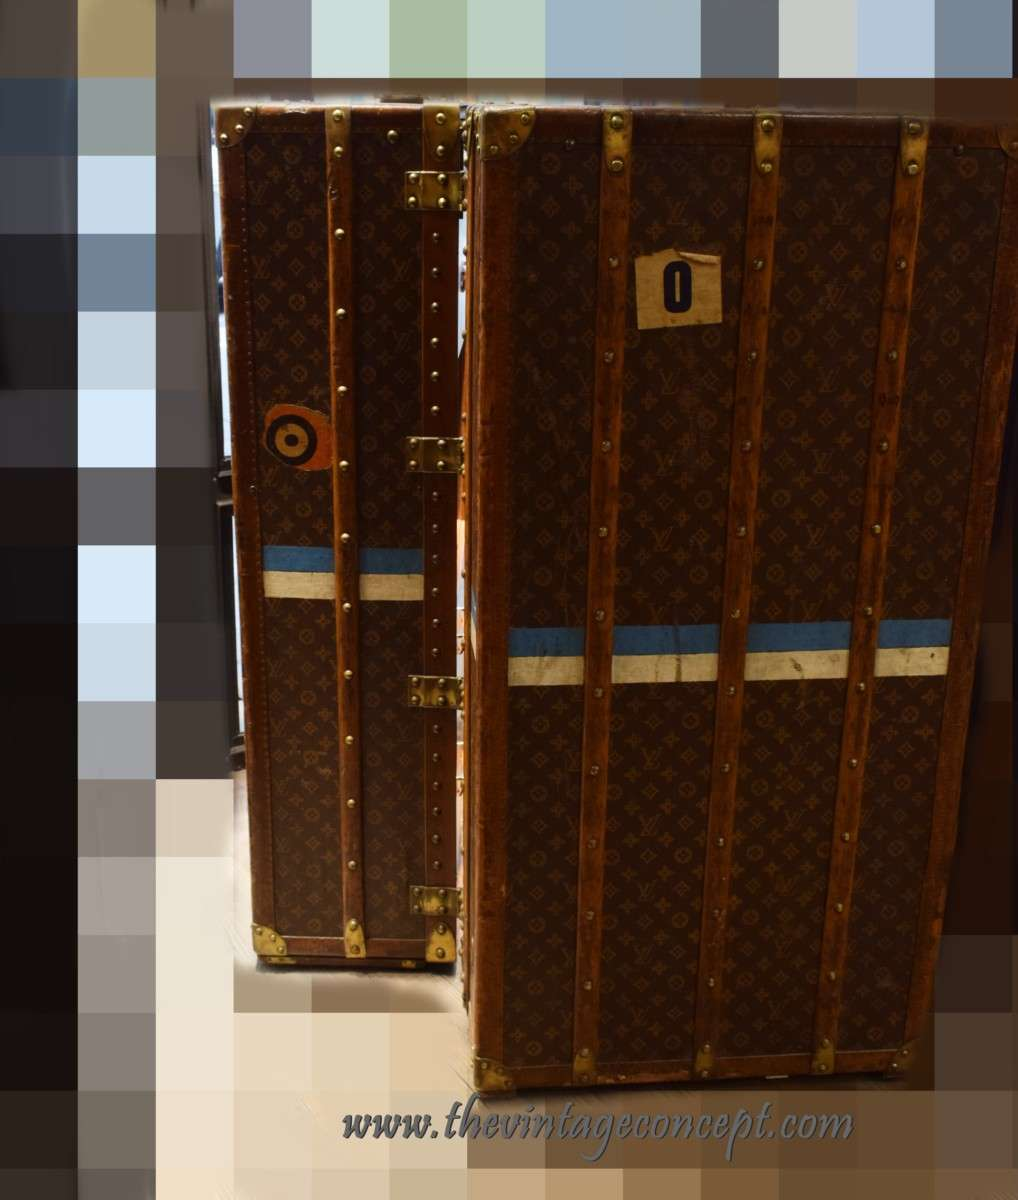 Louis Vuitton Make Up & Jewellery Tailor Made Trunk